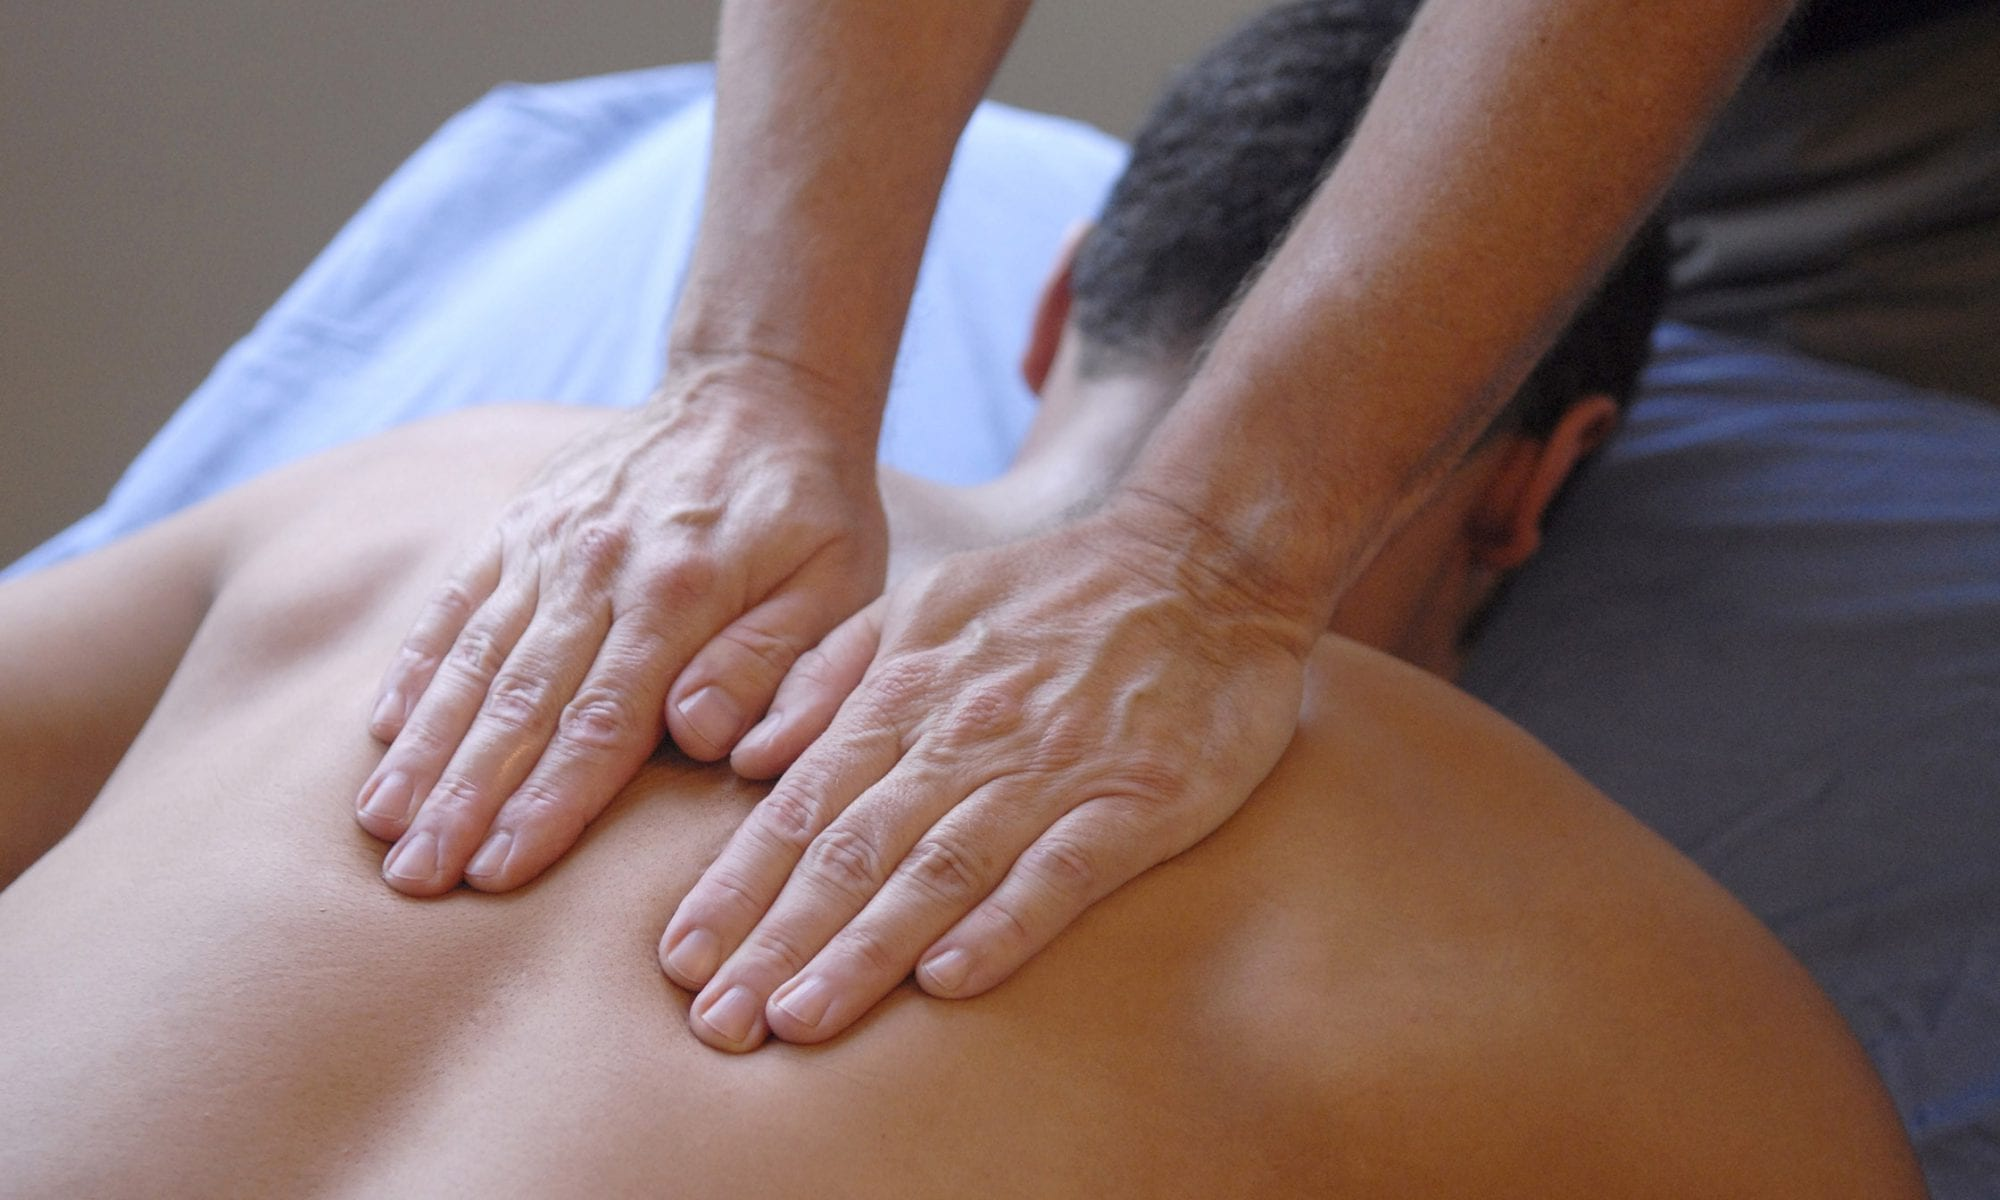 Massage man's back